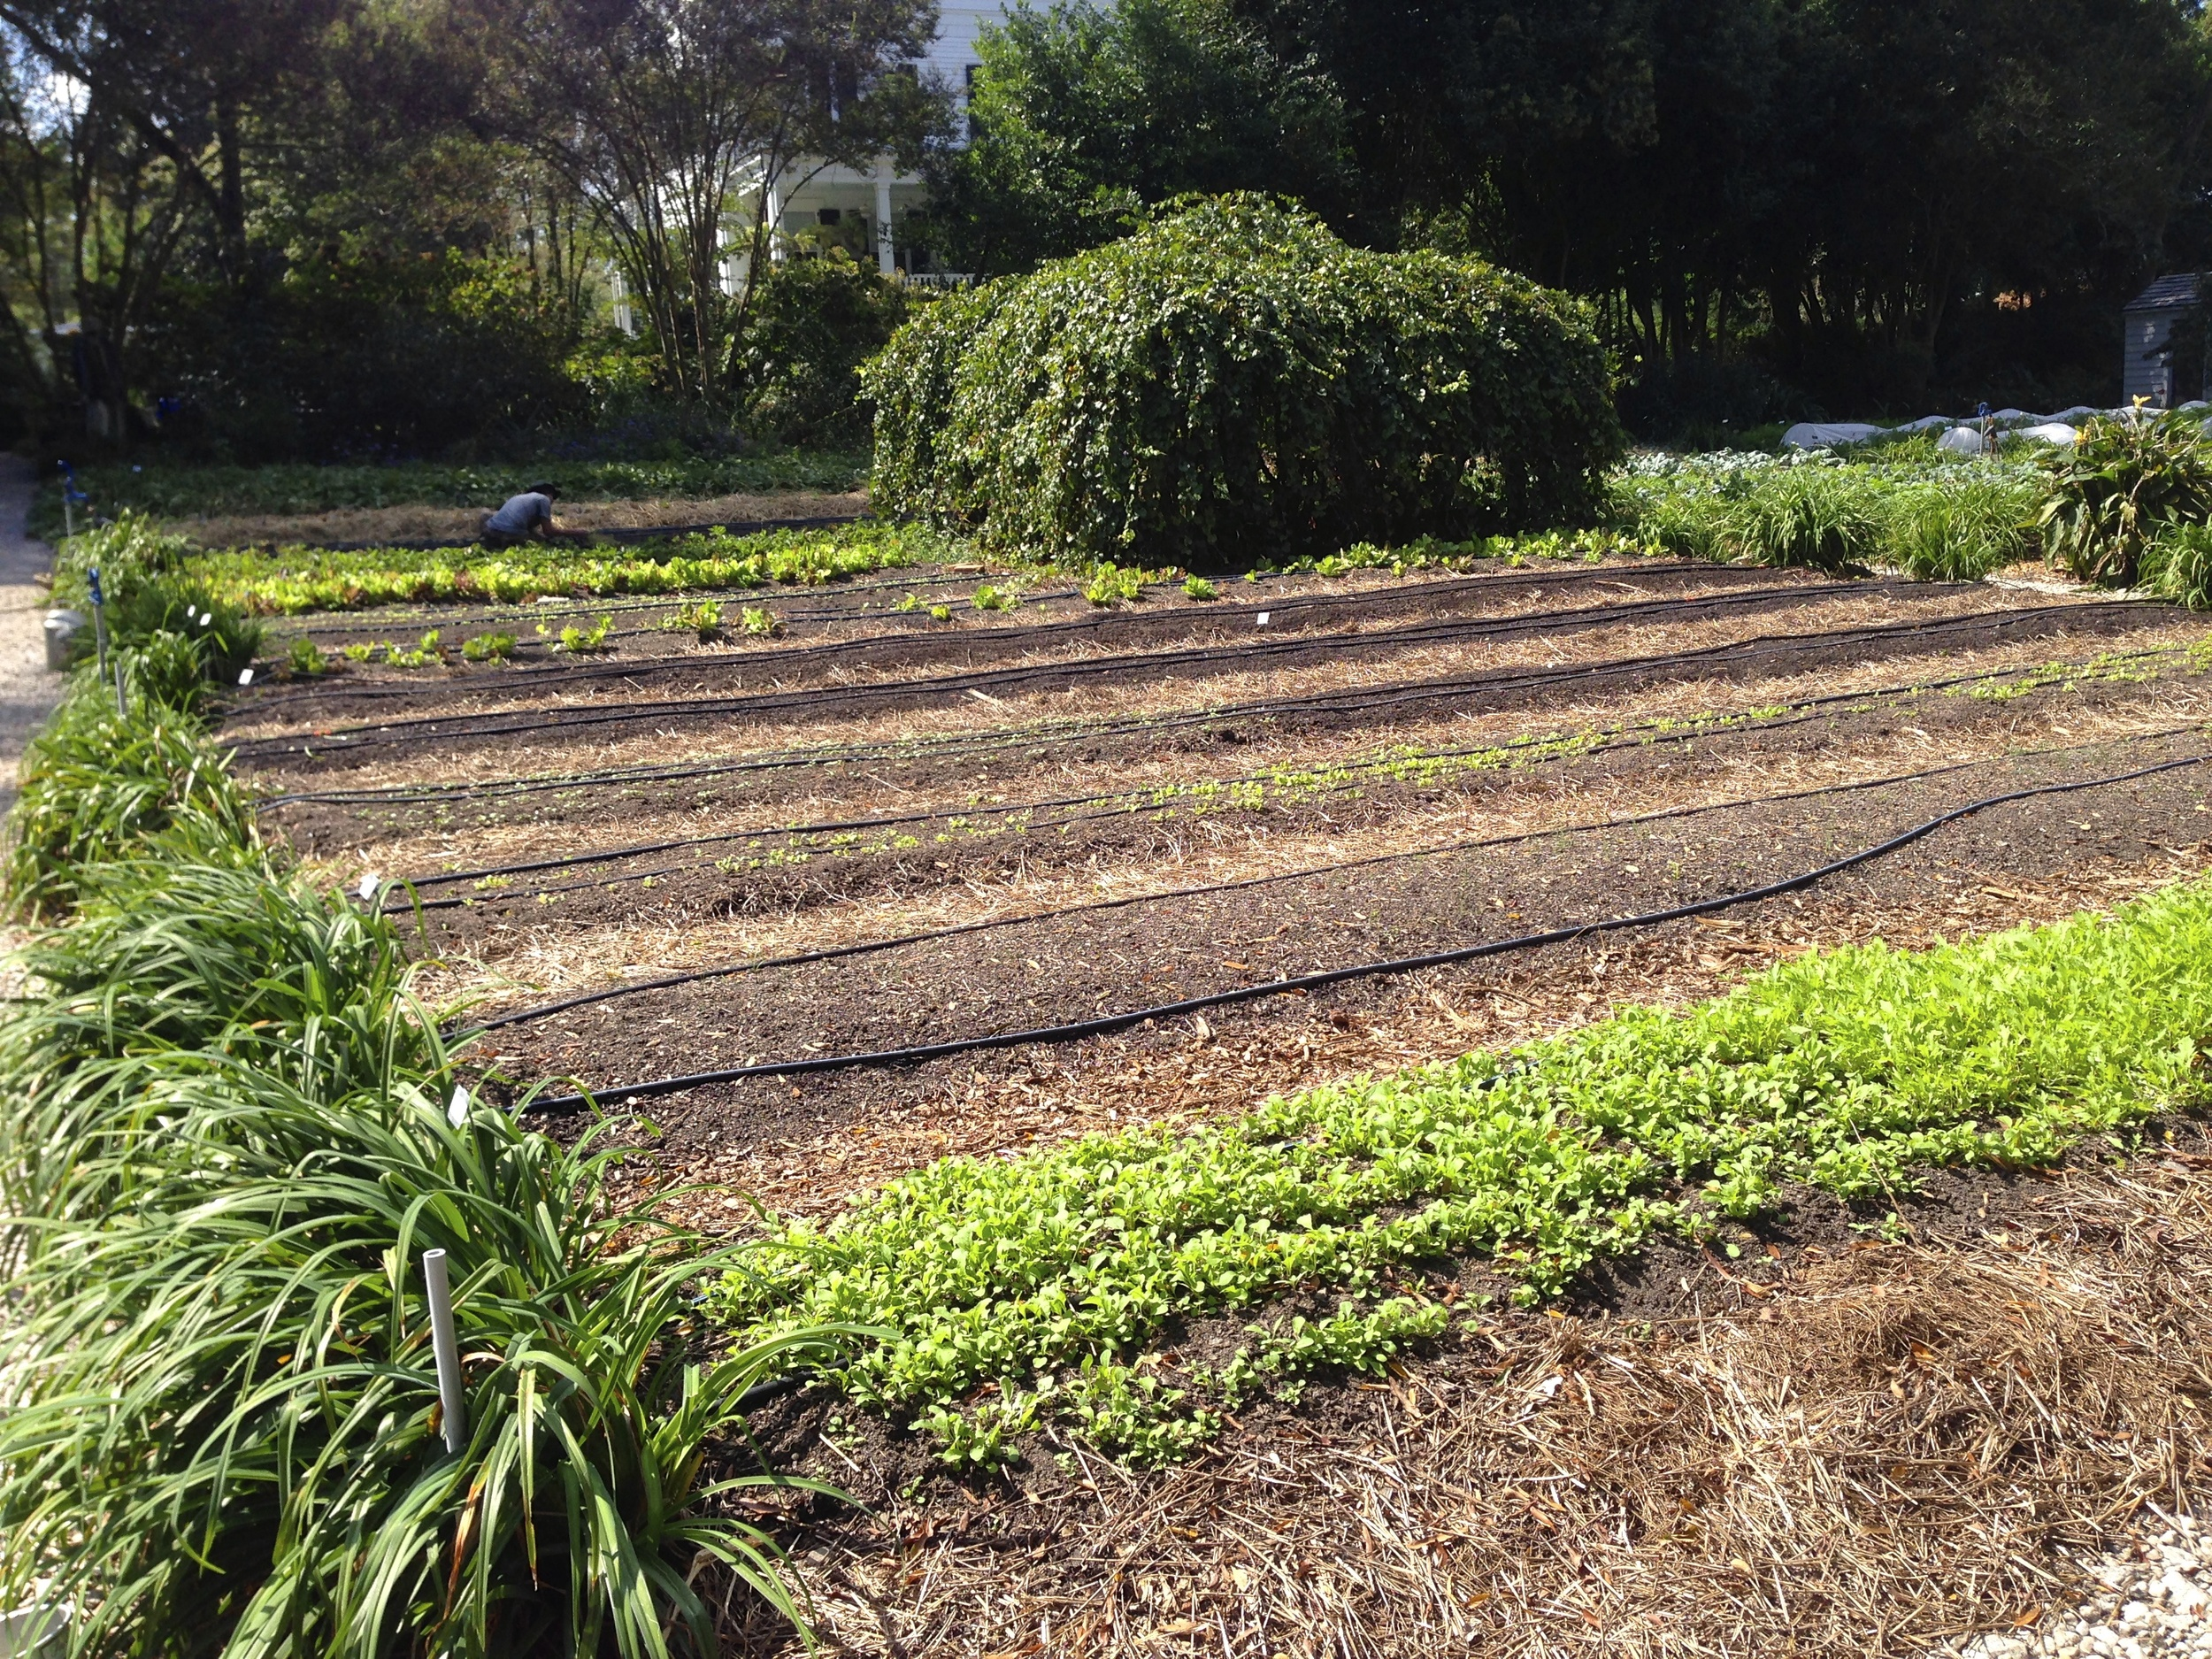 New rows for lettuces, some just seeded and some already producing.